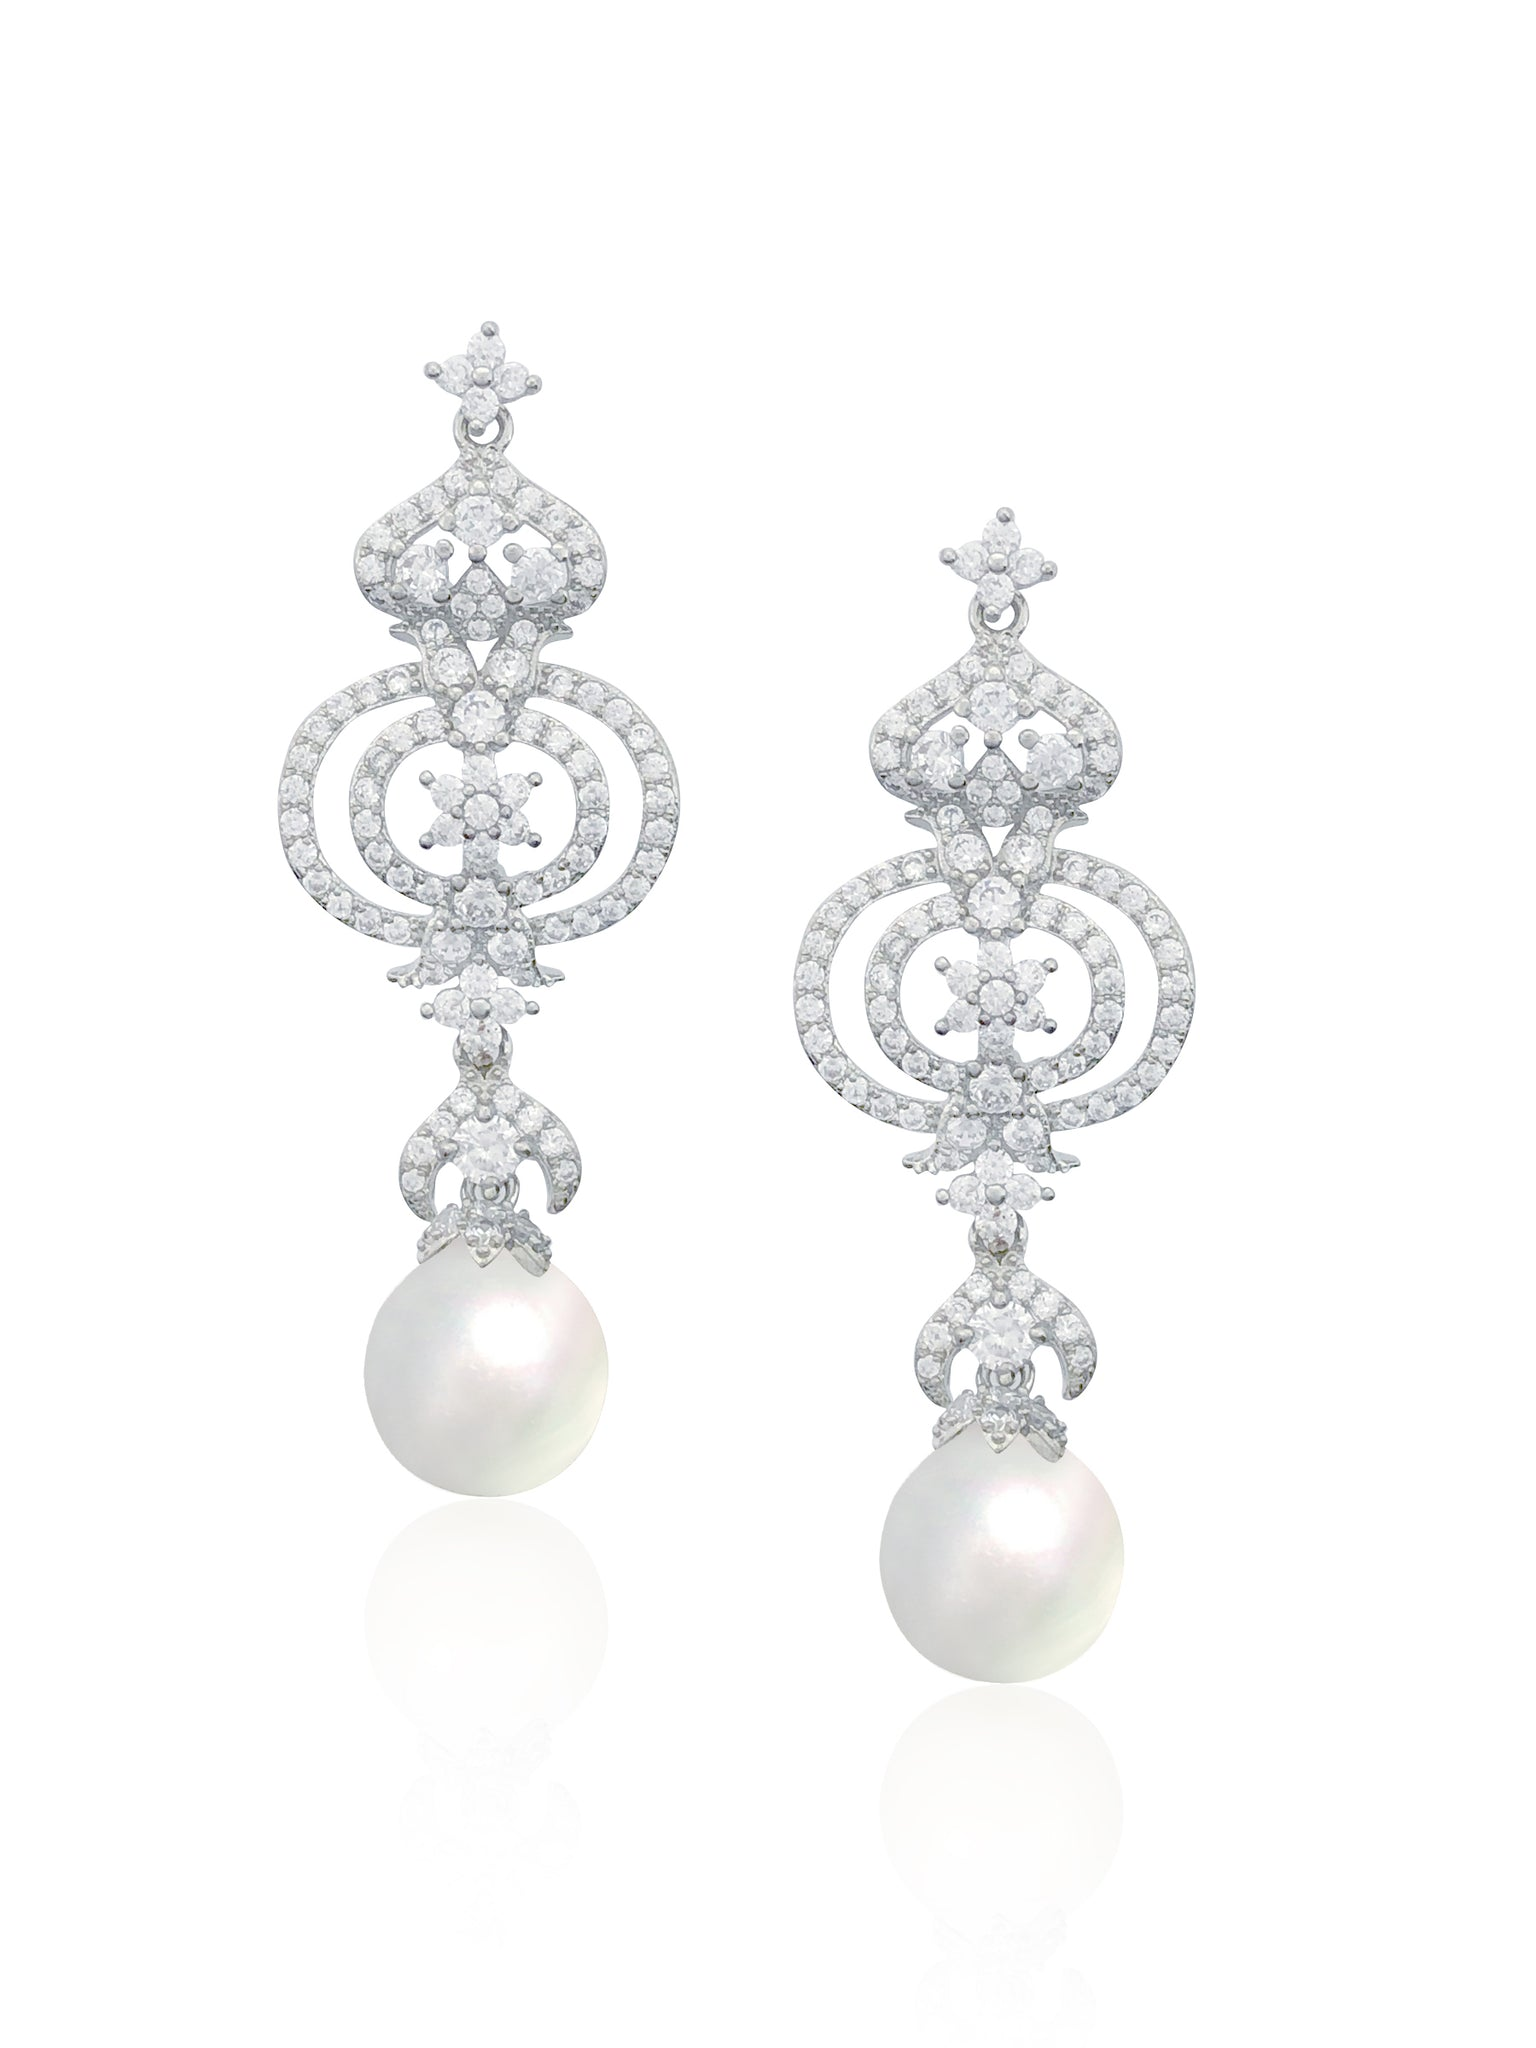 Regal Cubic Zirconia Earrings In Silver | JohnnyB Jewelry